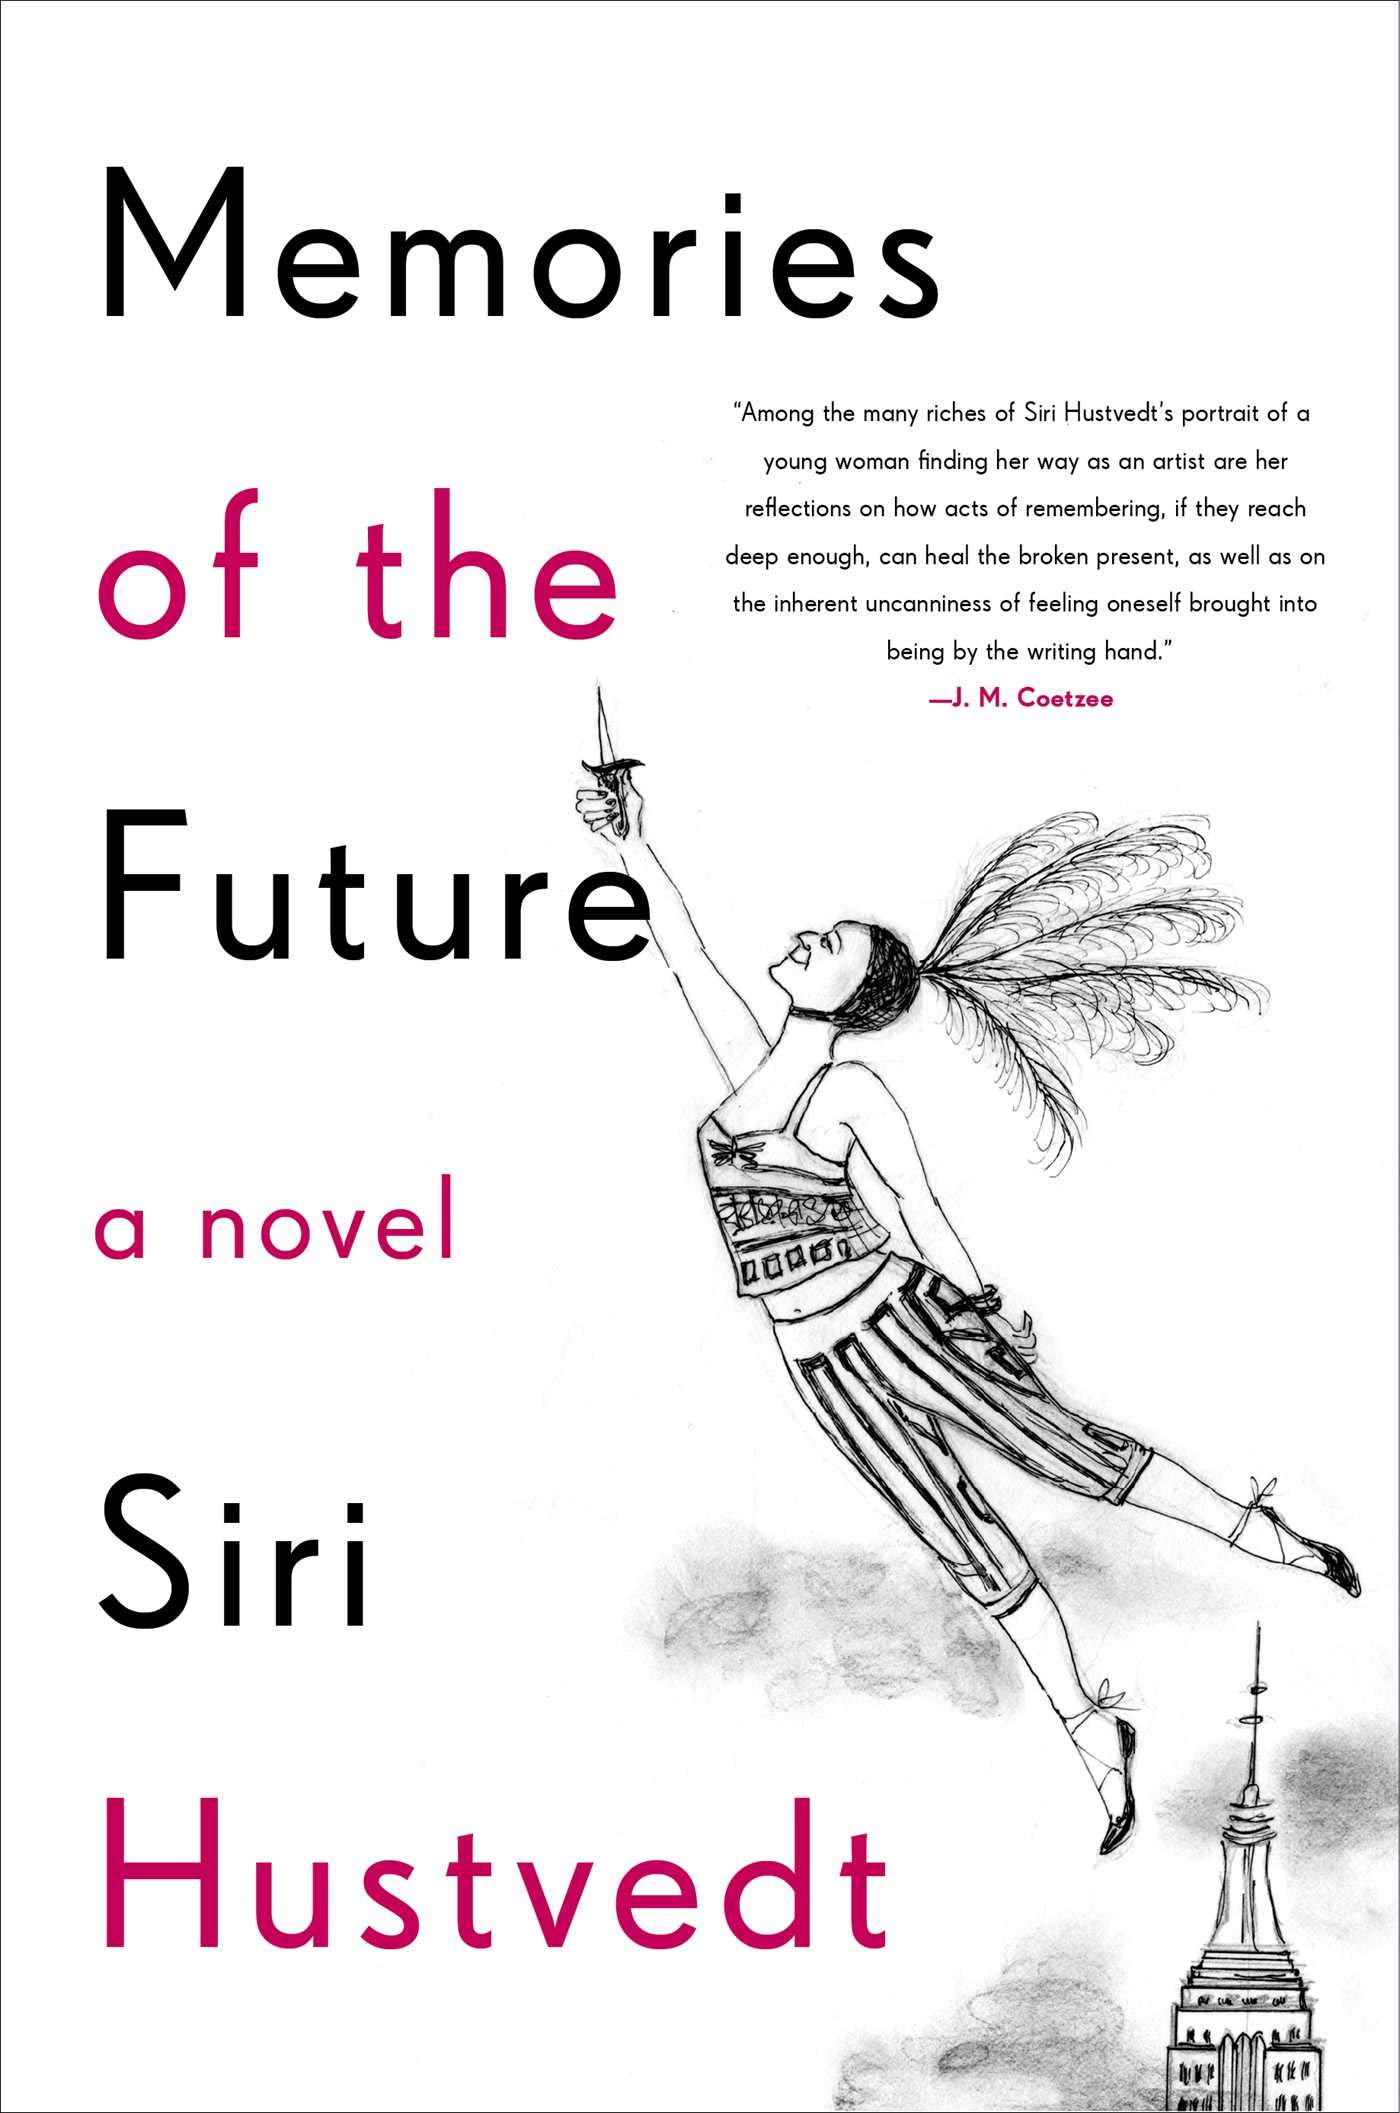 https://www.lareviewofbooks.org/article/the-many-explanations-on-siri-hustvedts-memories-of-the-future